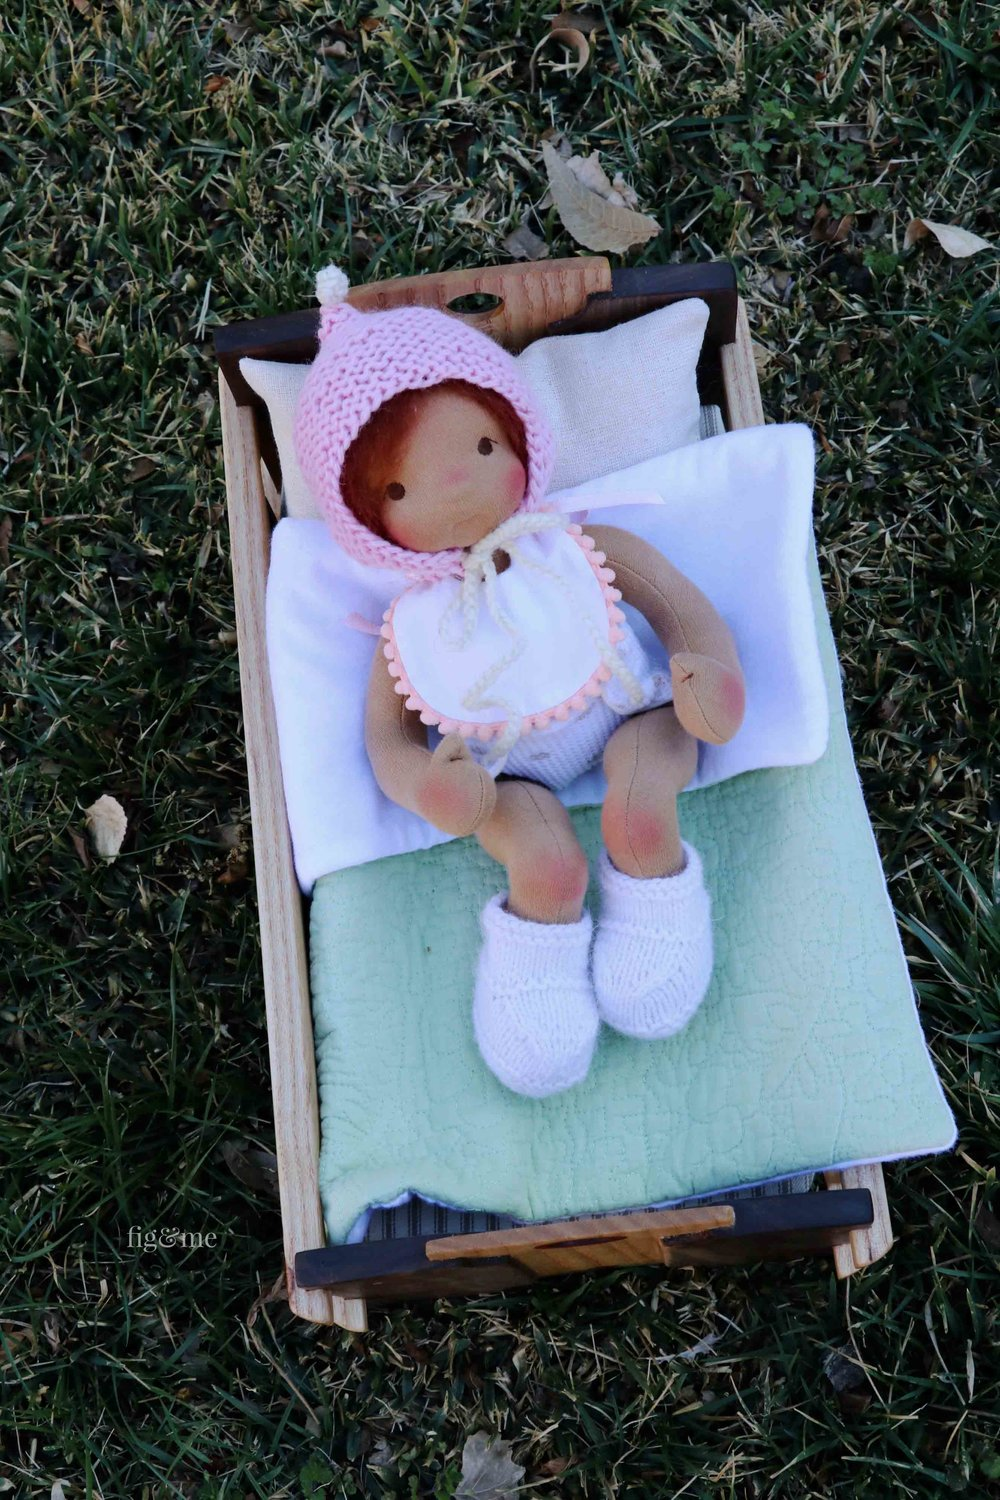 Baby doll Kasja in her wooden cradle, by Fig and Me.